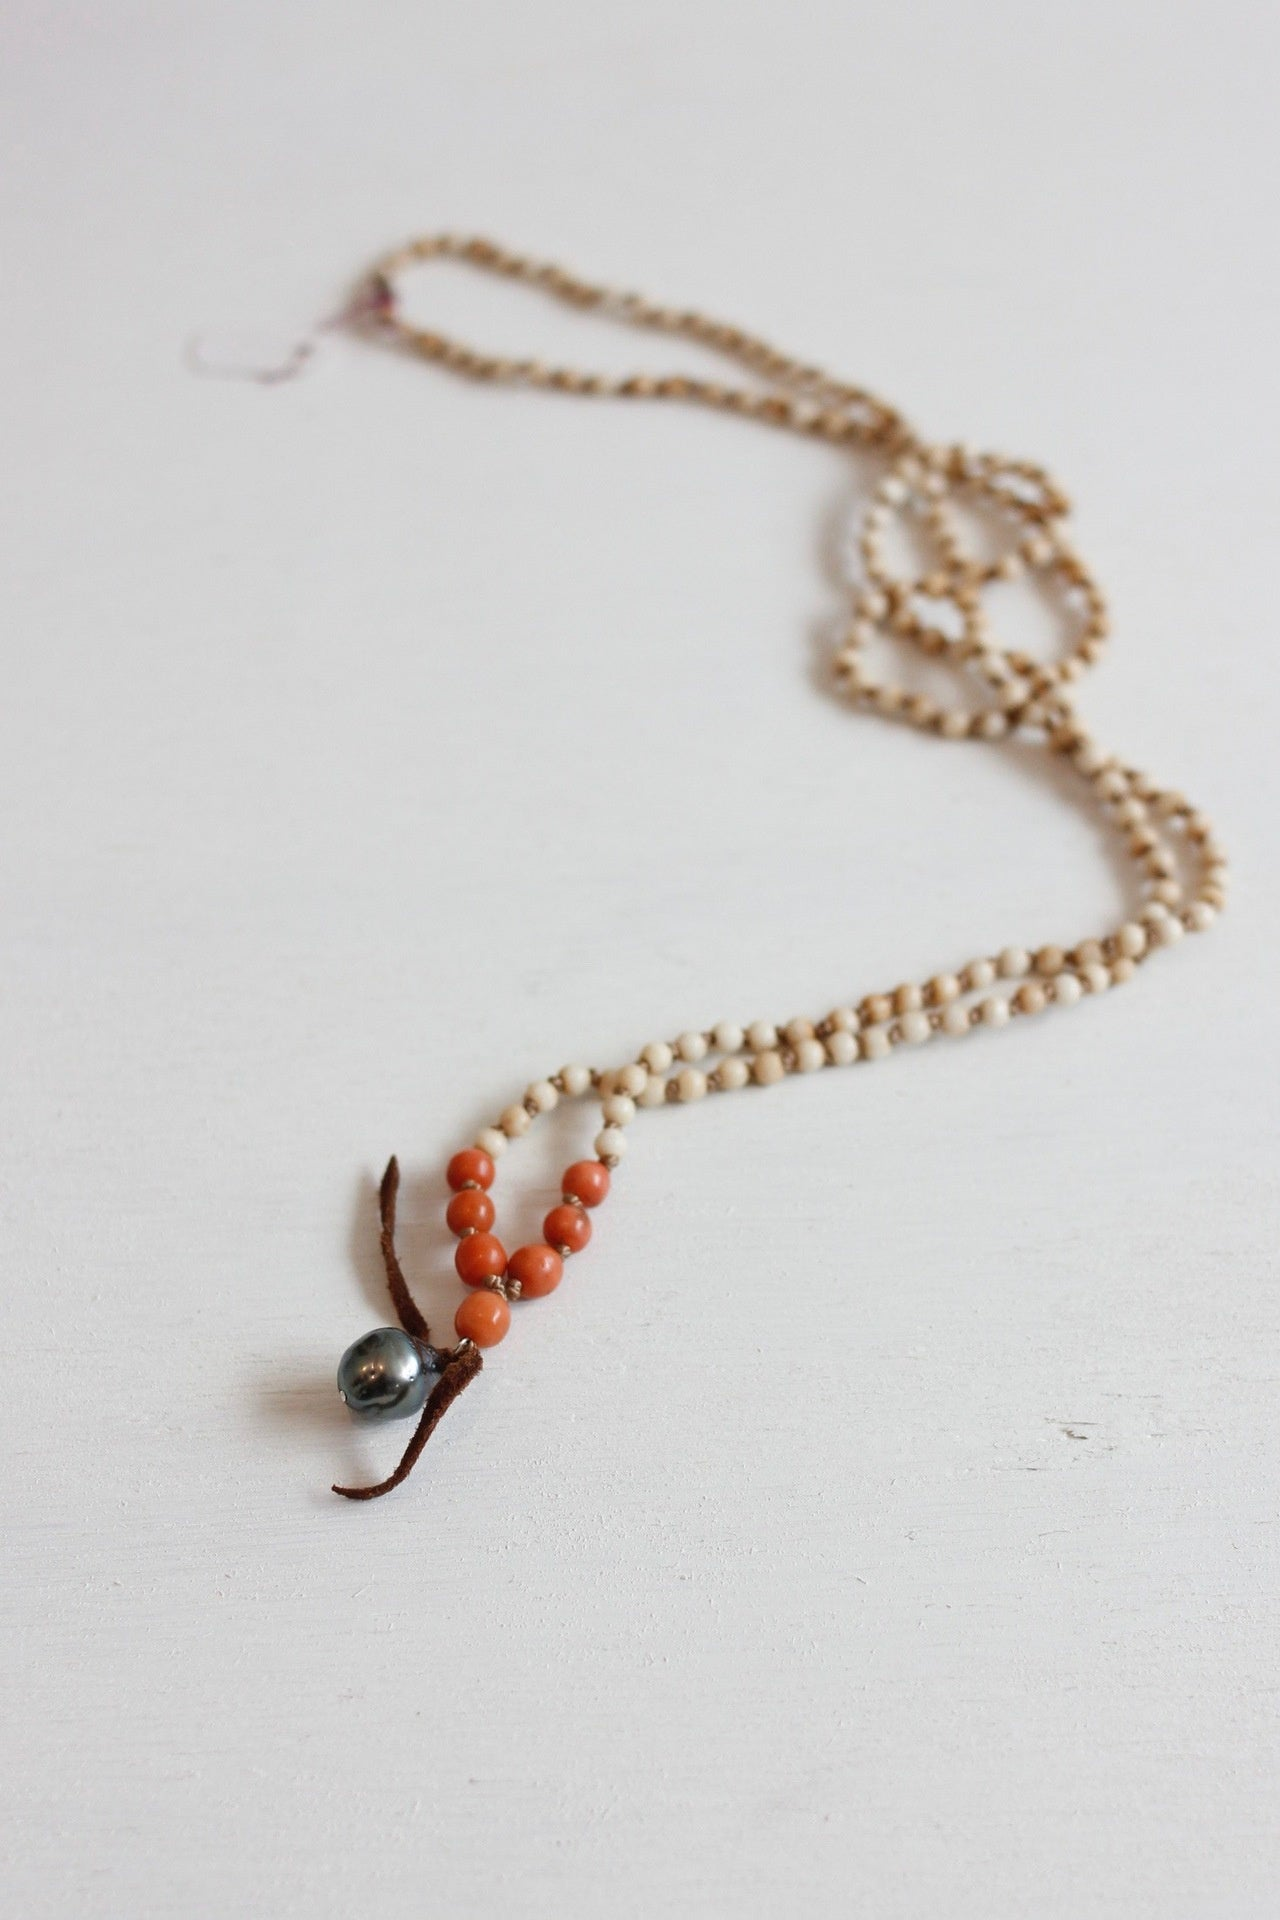 Kate Mcmahon bone and coral necklace with leather and pearl pendant